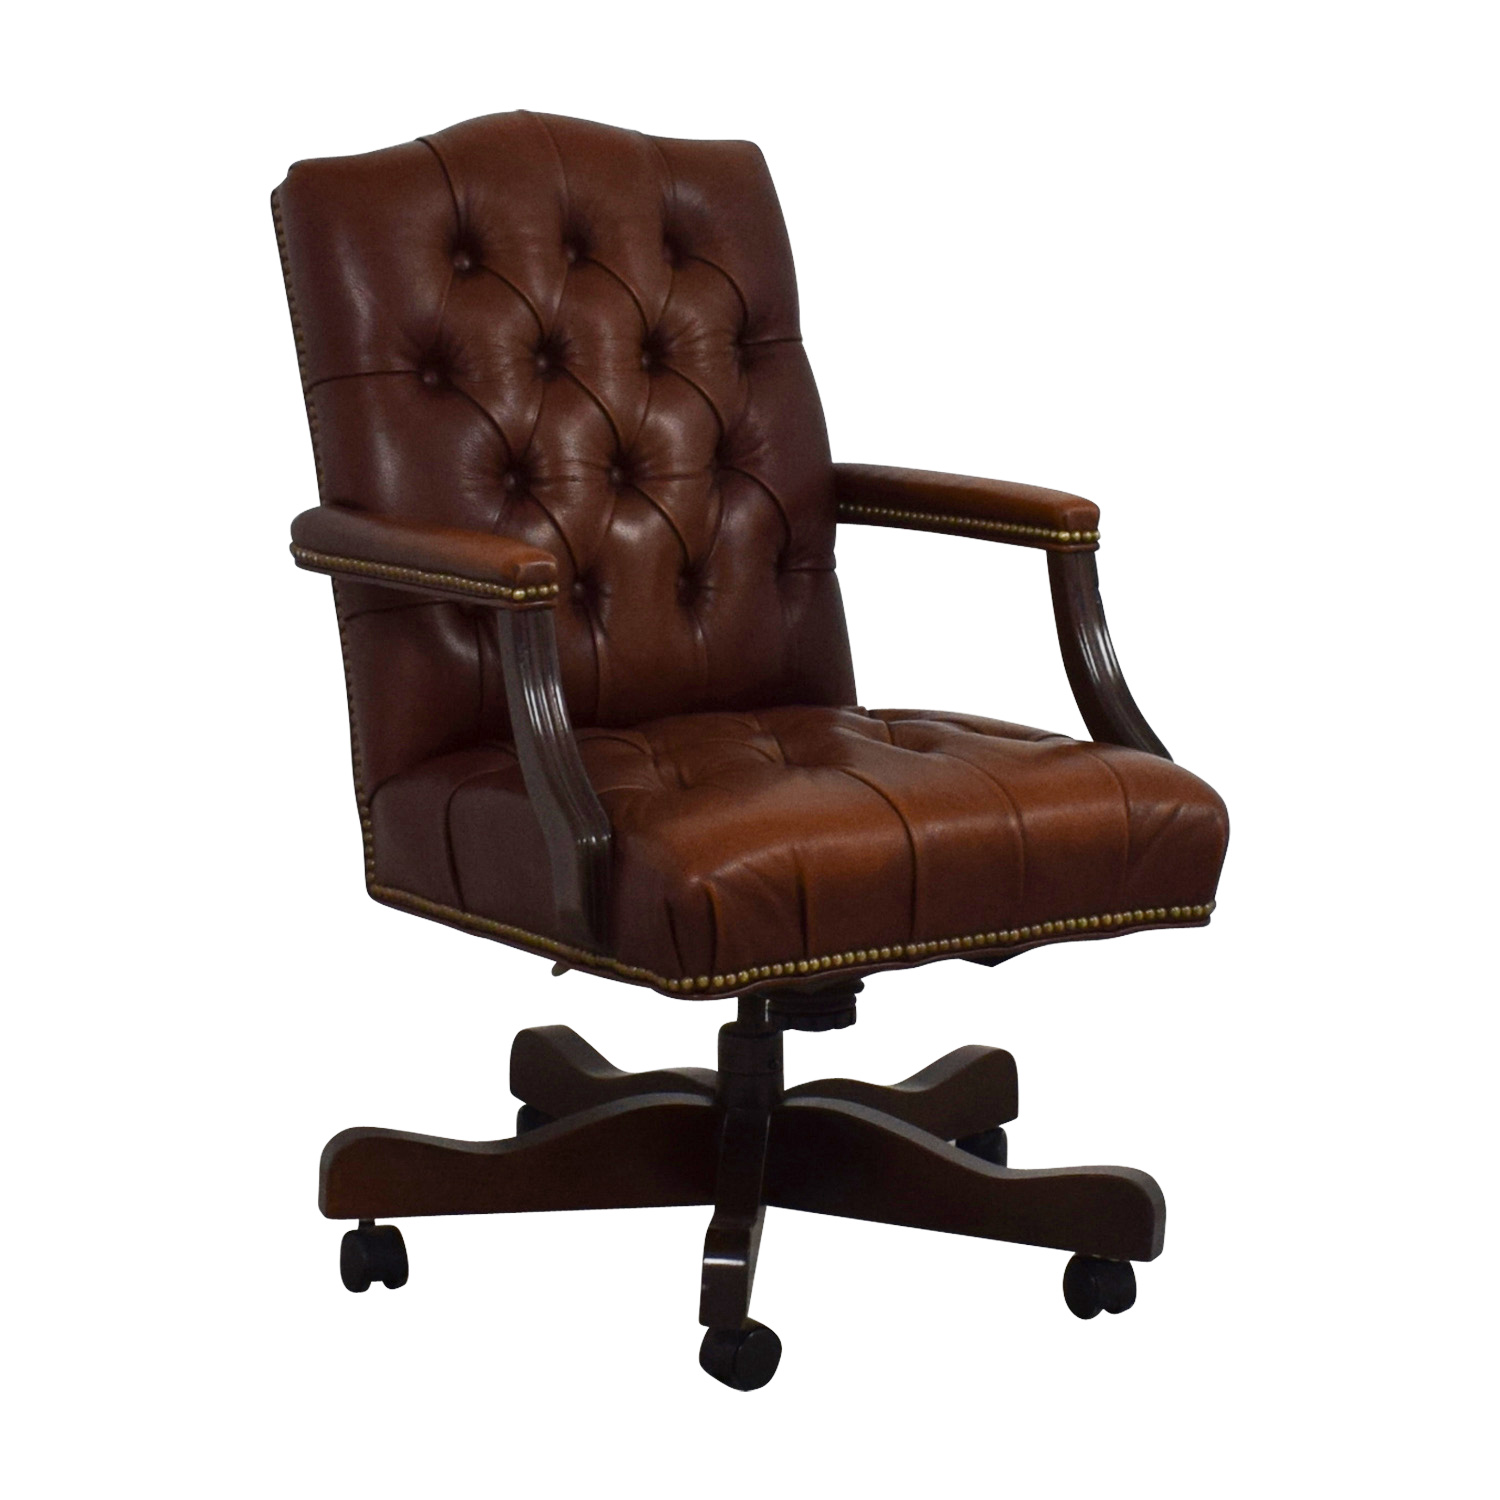 Cool 79 Off Ethan Allen Ethan Allen Brown Leather Desk Chair Chairs Pabps2019 Chair Design Images Pabps2019Com